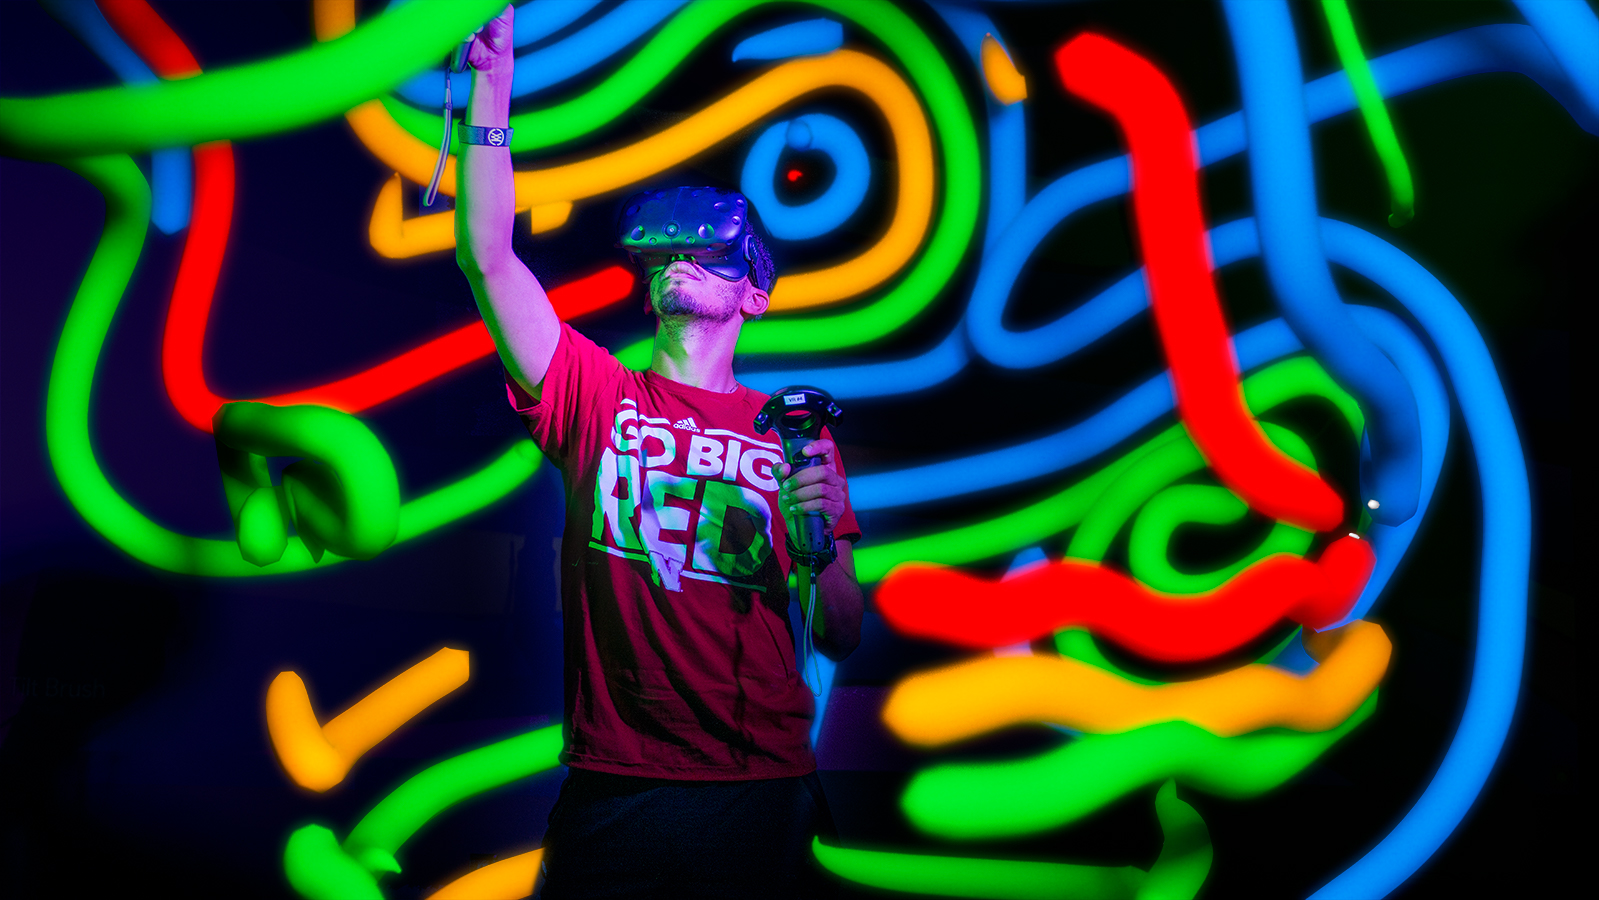 Image of student using VR headset with rendered graphics surrounding him.